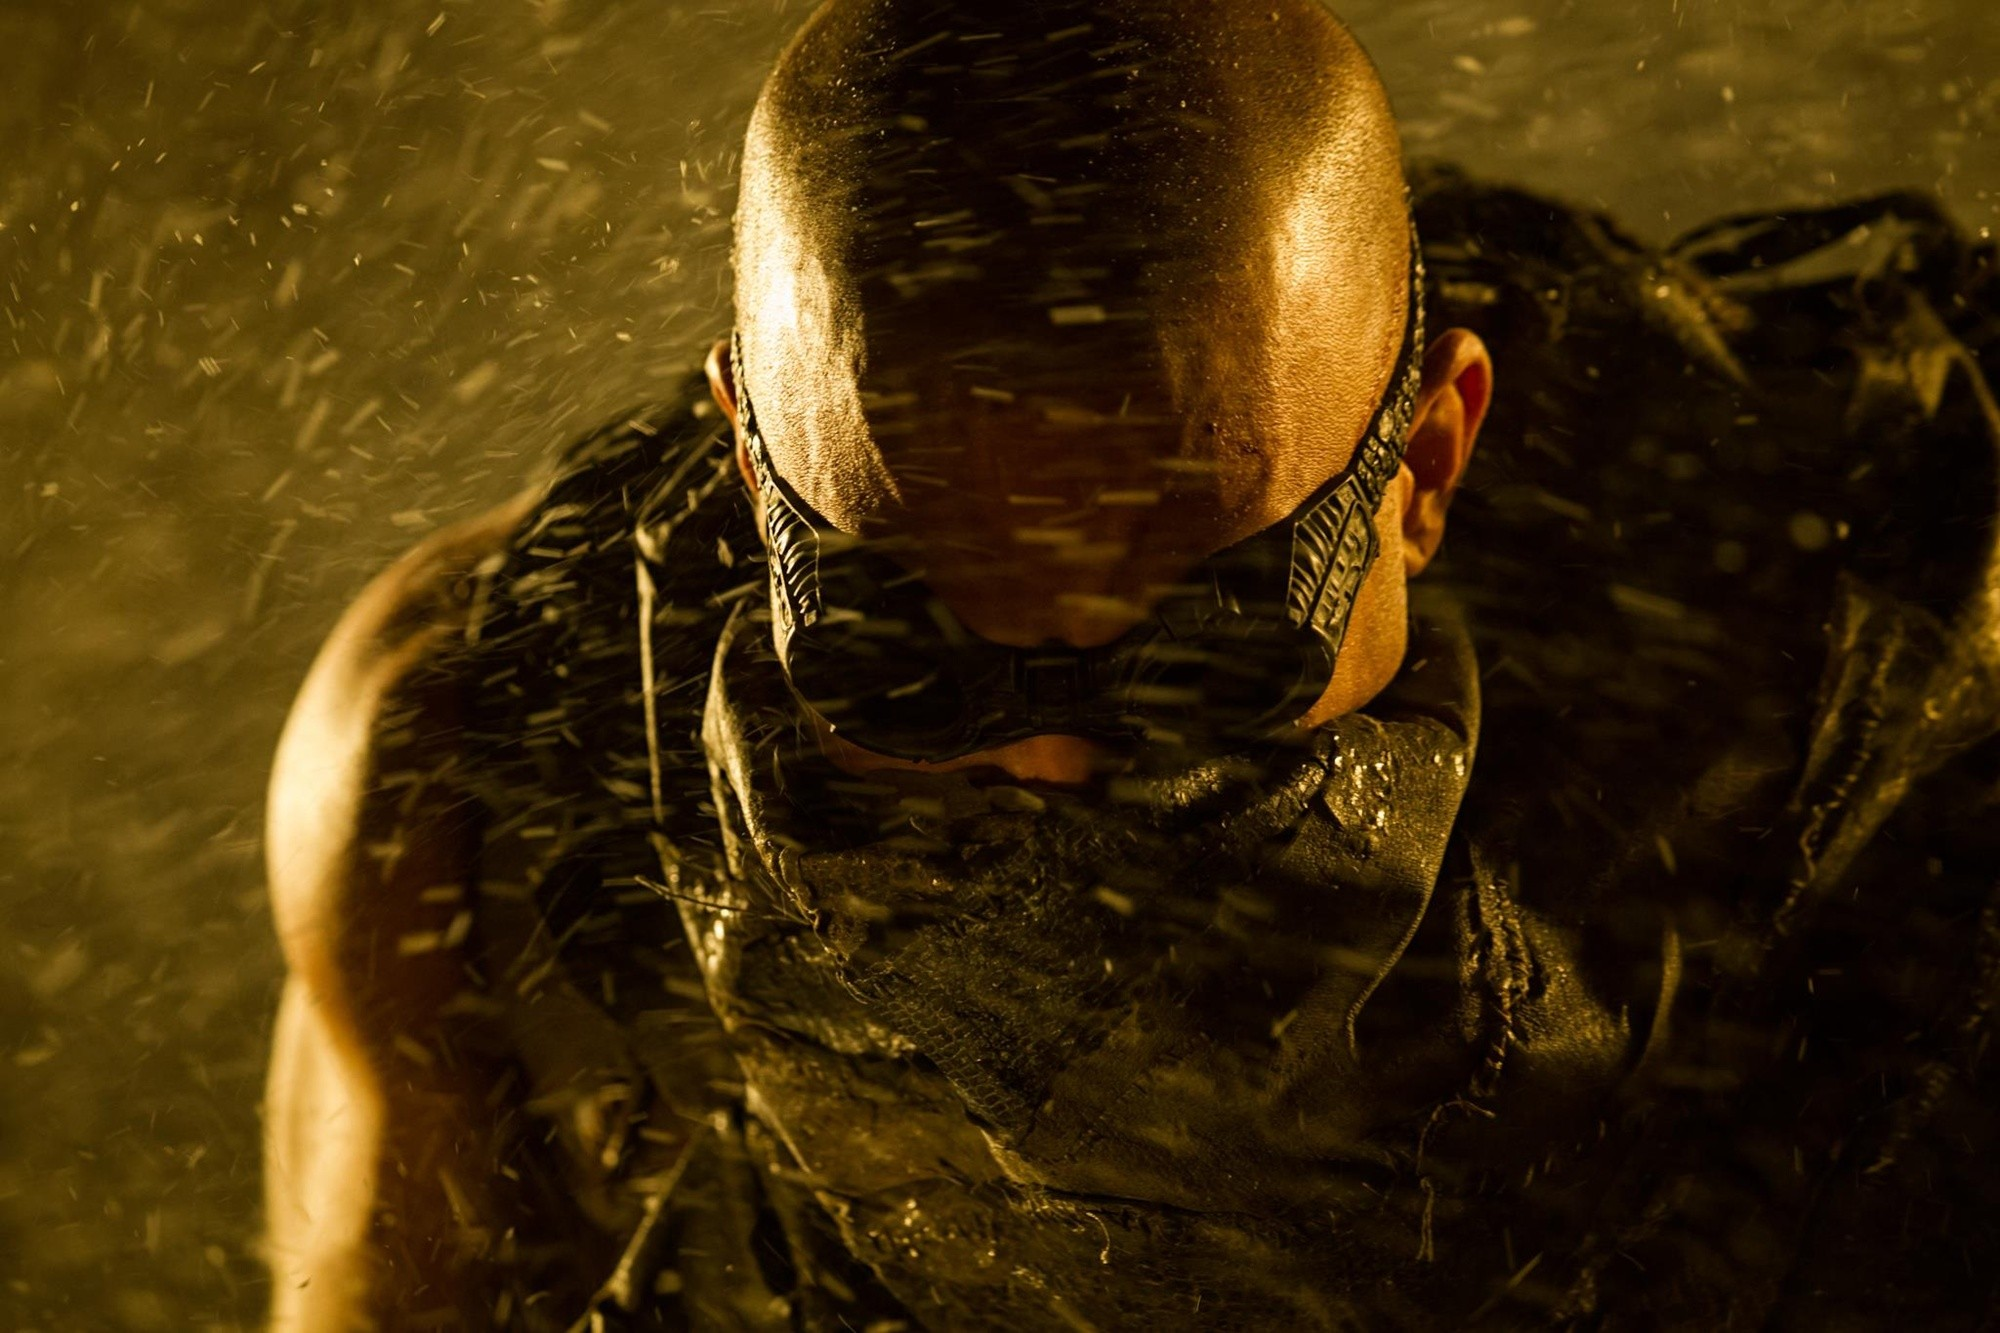 The history of Riddick